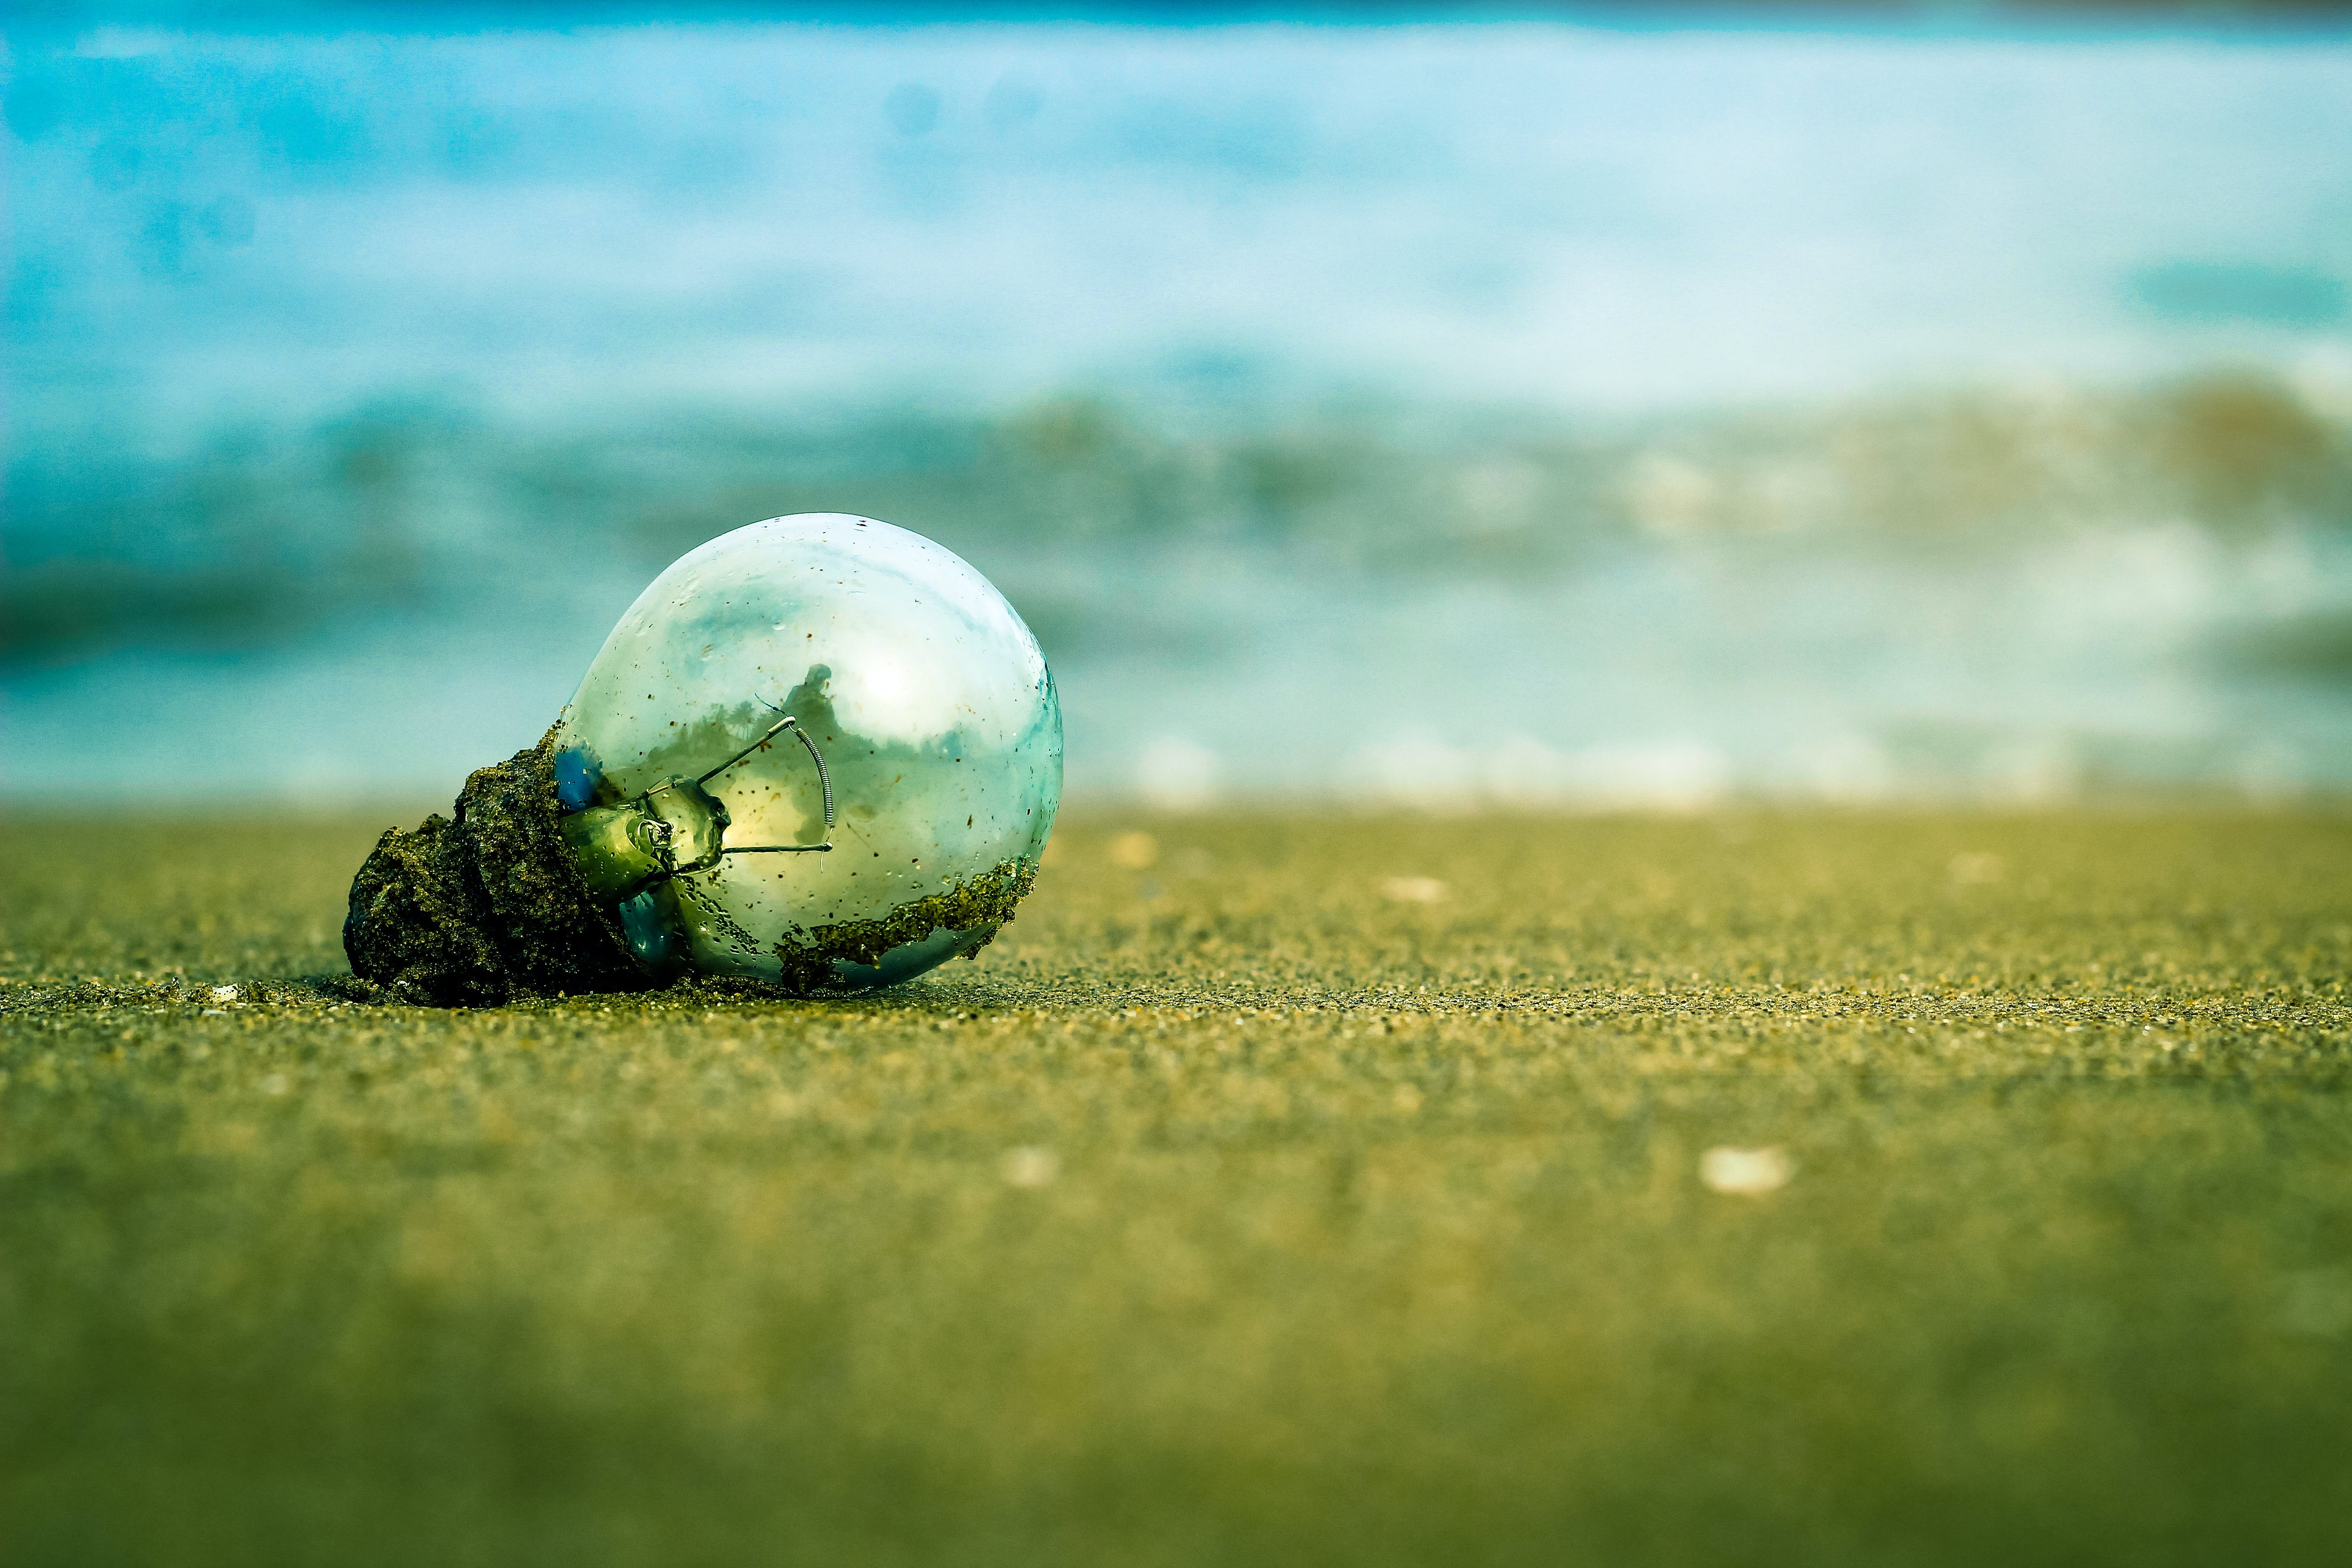 Free stock photo of beach, blue water, bulb, cloud